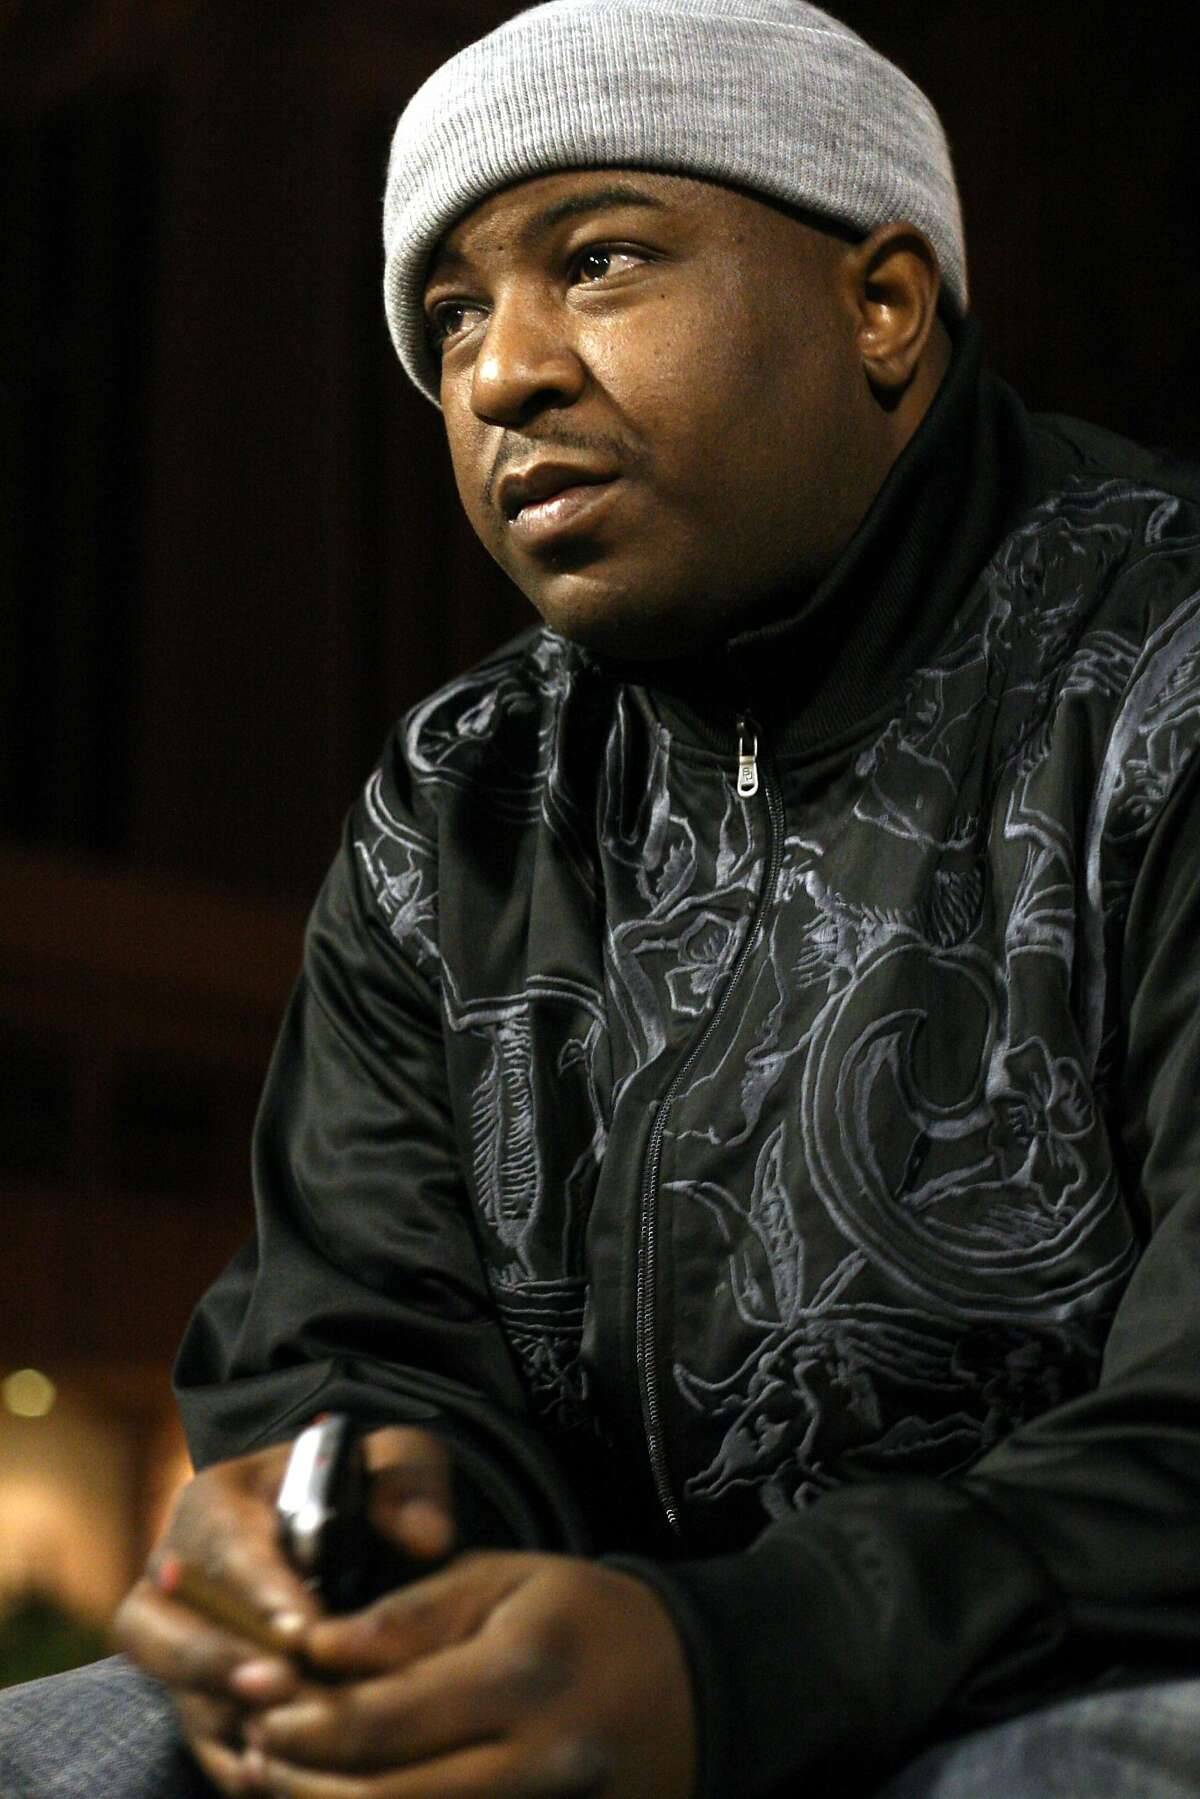 We All We Got kicks off its 2011 series Friday at Club Six with a show by local musician the Jacka.